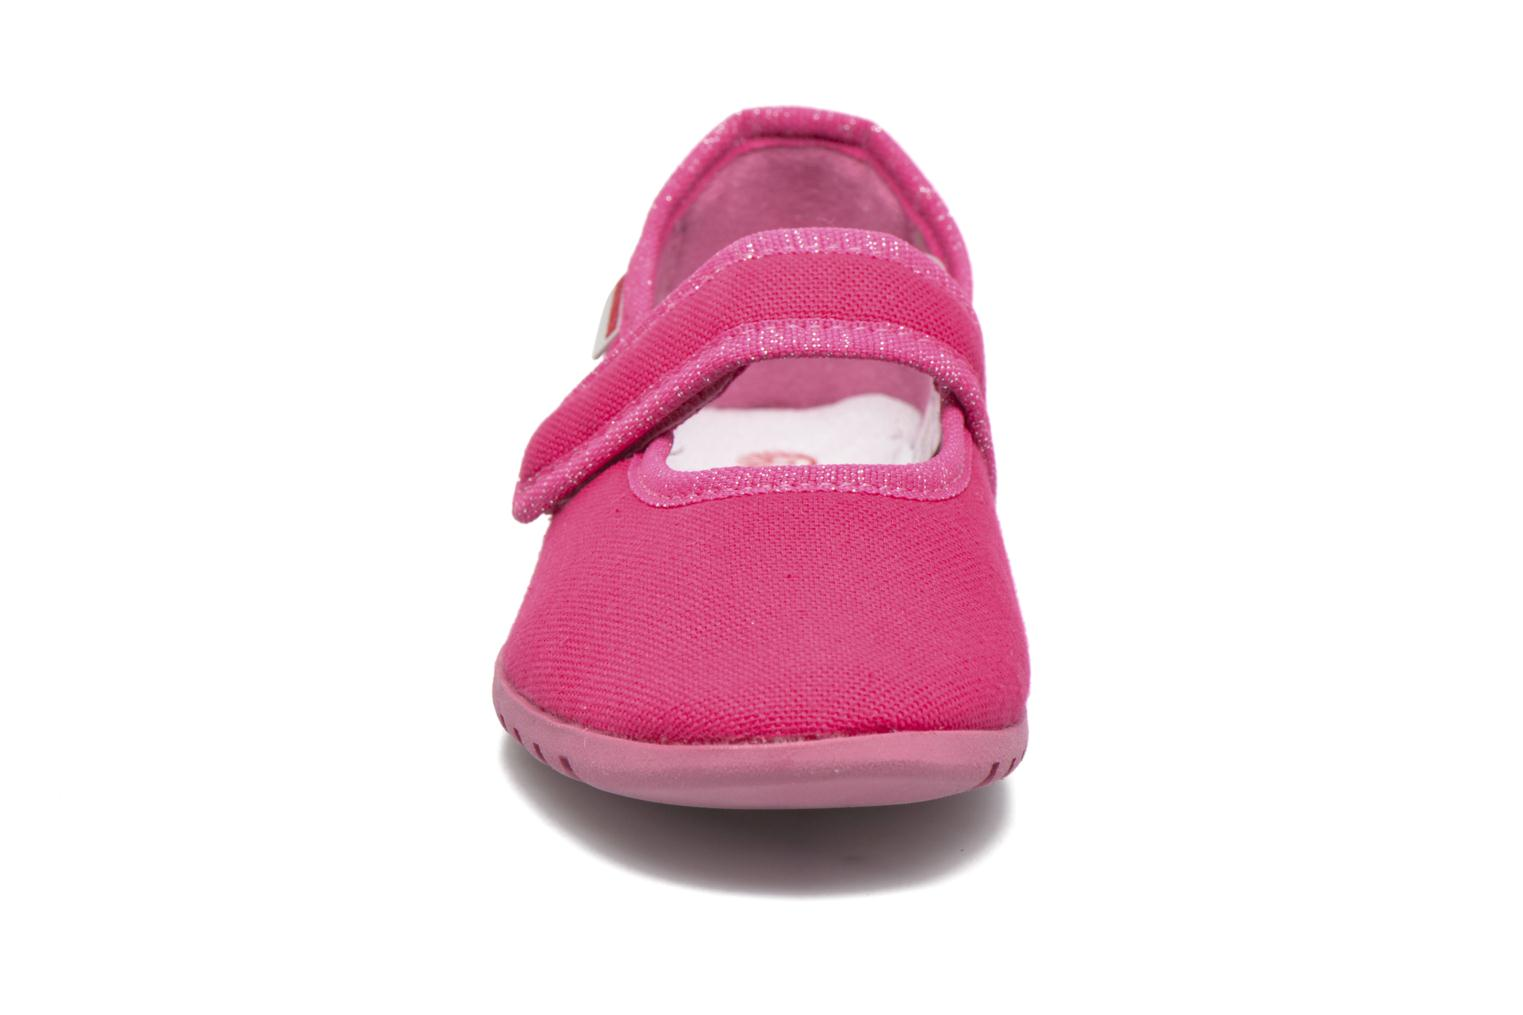 Chaussons Giesswein Liebsted Rose vue portées chaussures